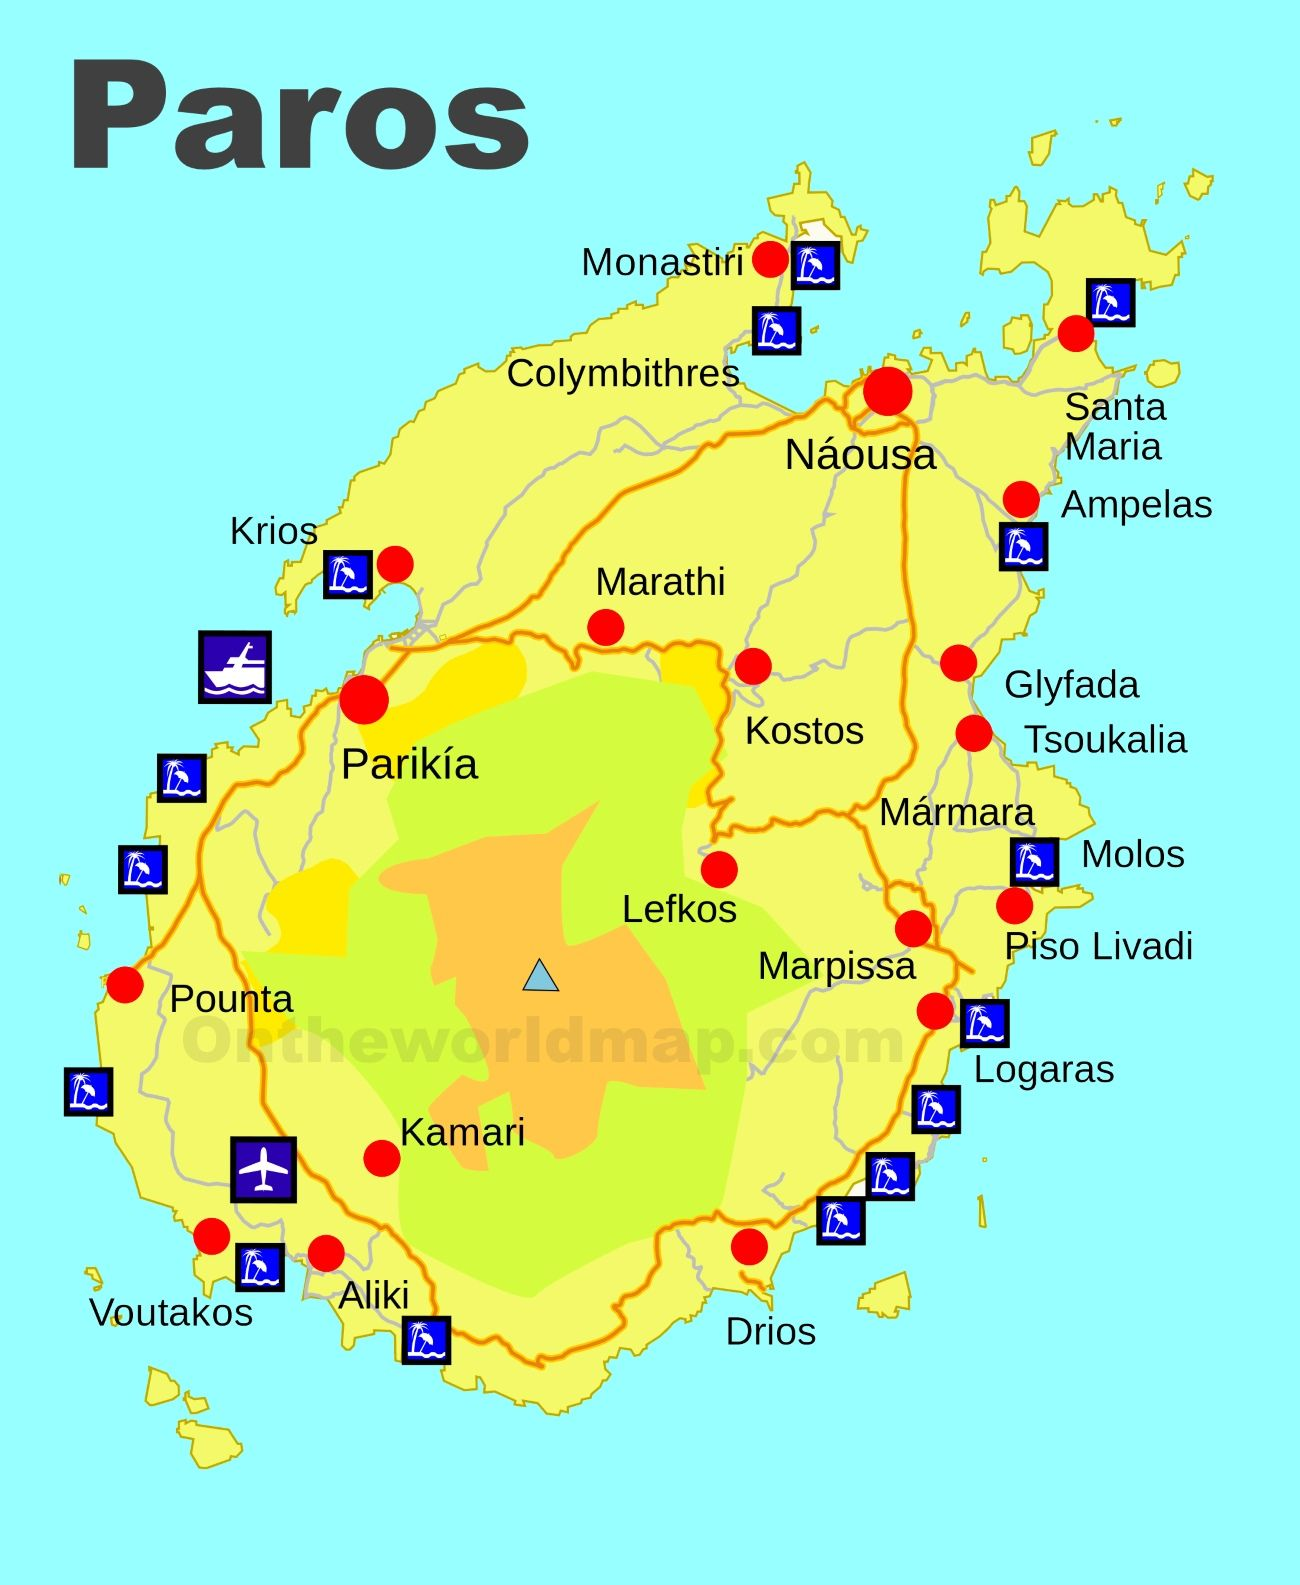 Islands Of Greece Map.Pin By Athena Study Abroad On Paros Island Greece Pinterest